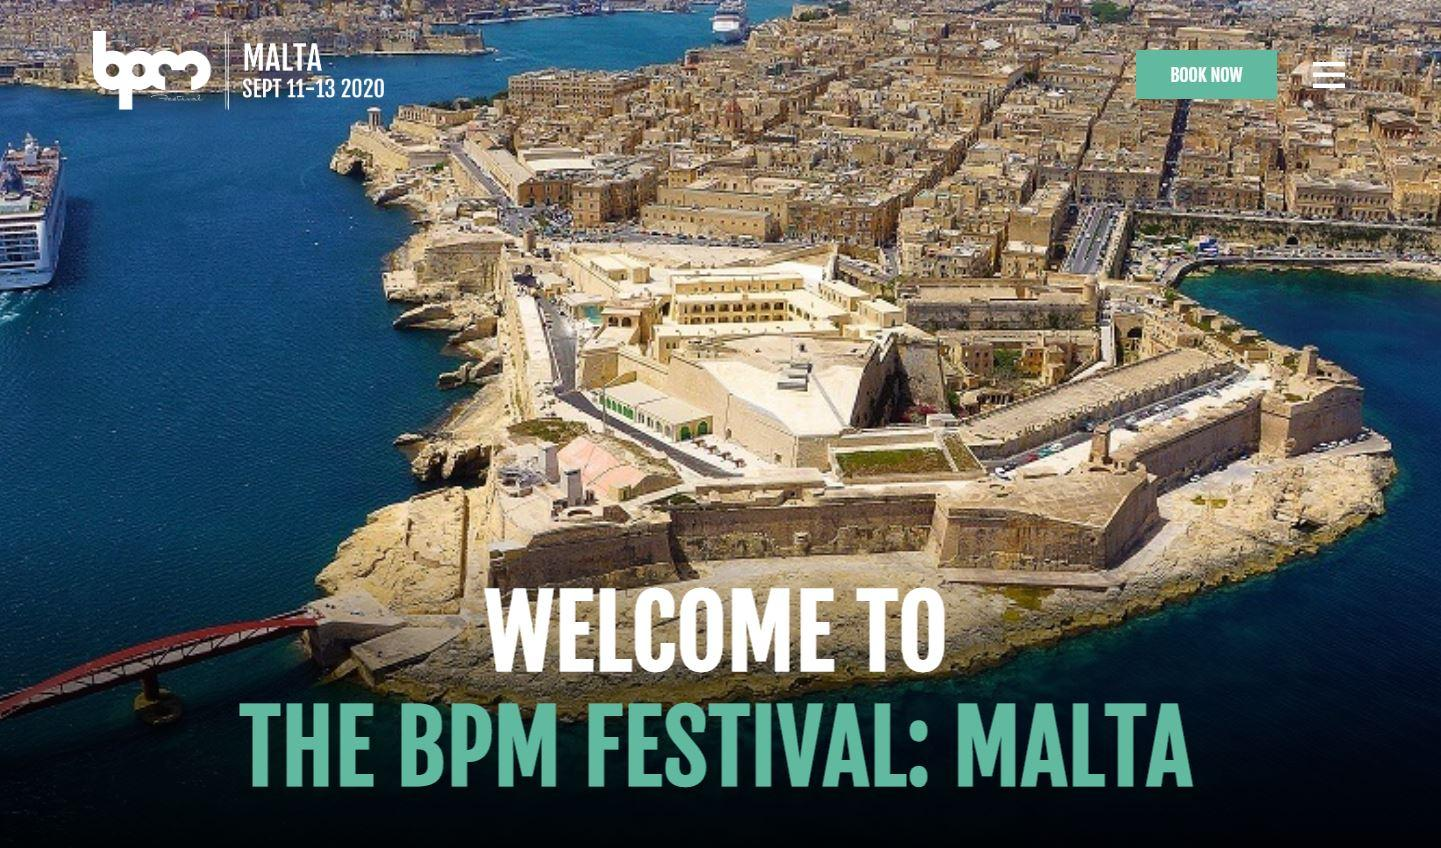 Arguably the largest of the four events, BPM Festival, is scheduled to take place in September.